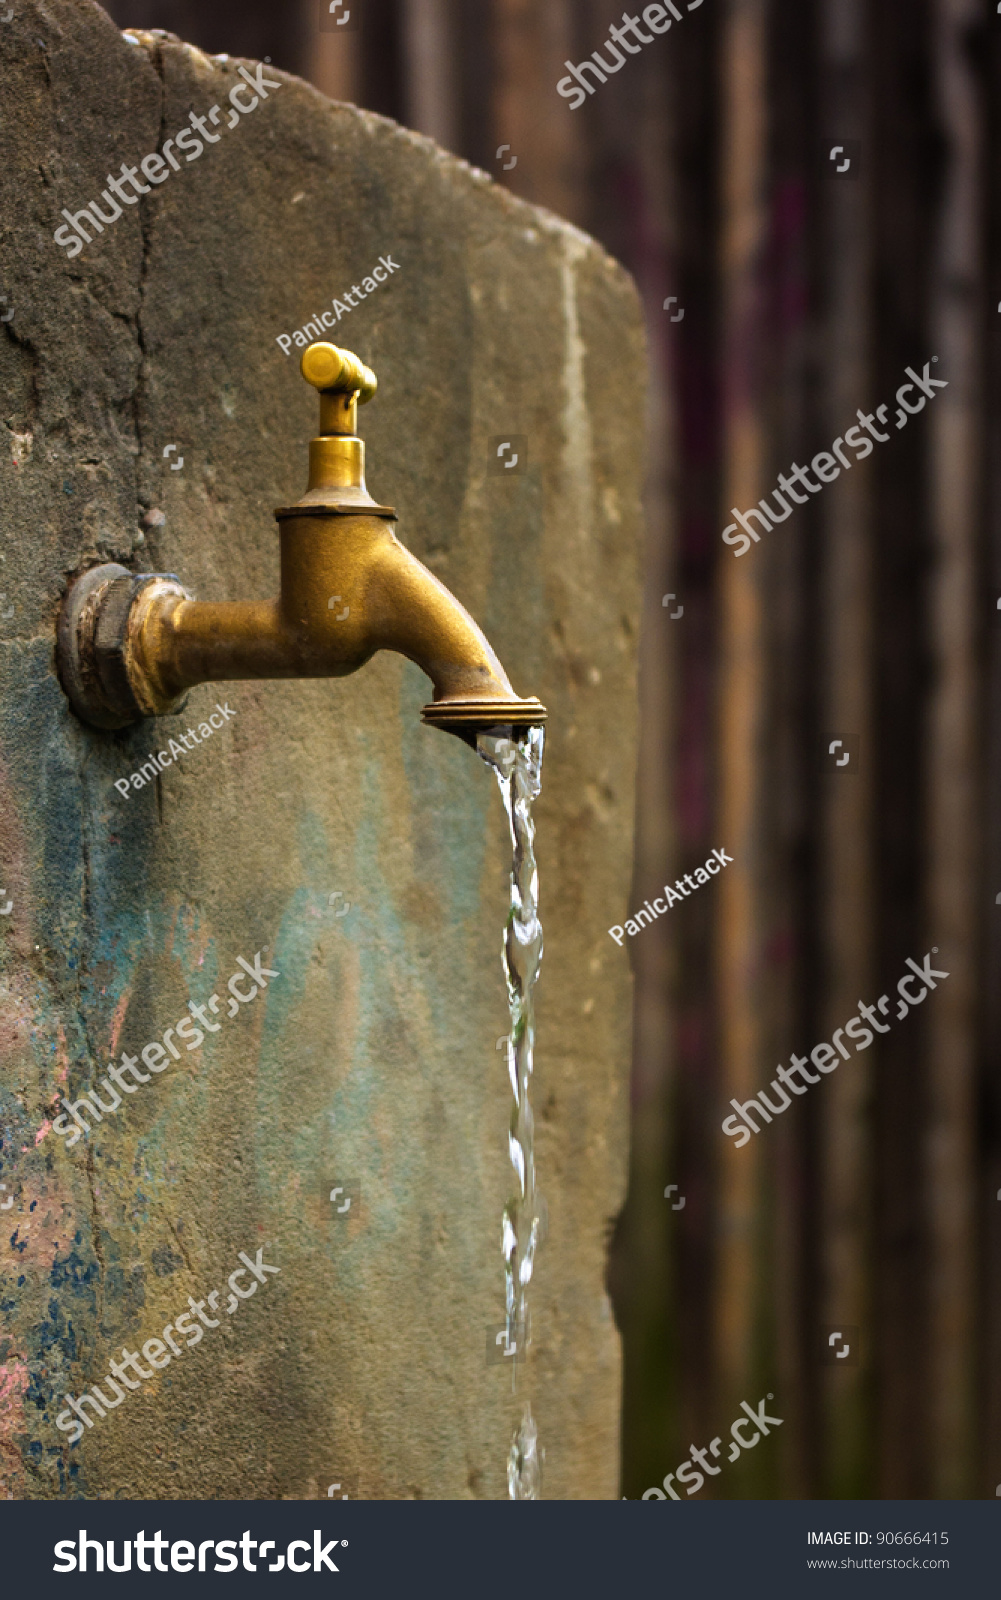 Old Rusty Water Tap On Cracked Stock Photo (Royalty Free) 90666415 ...